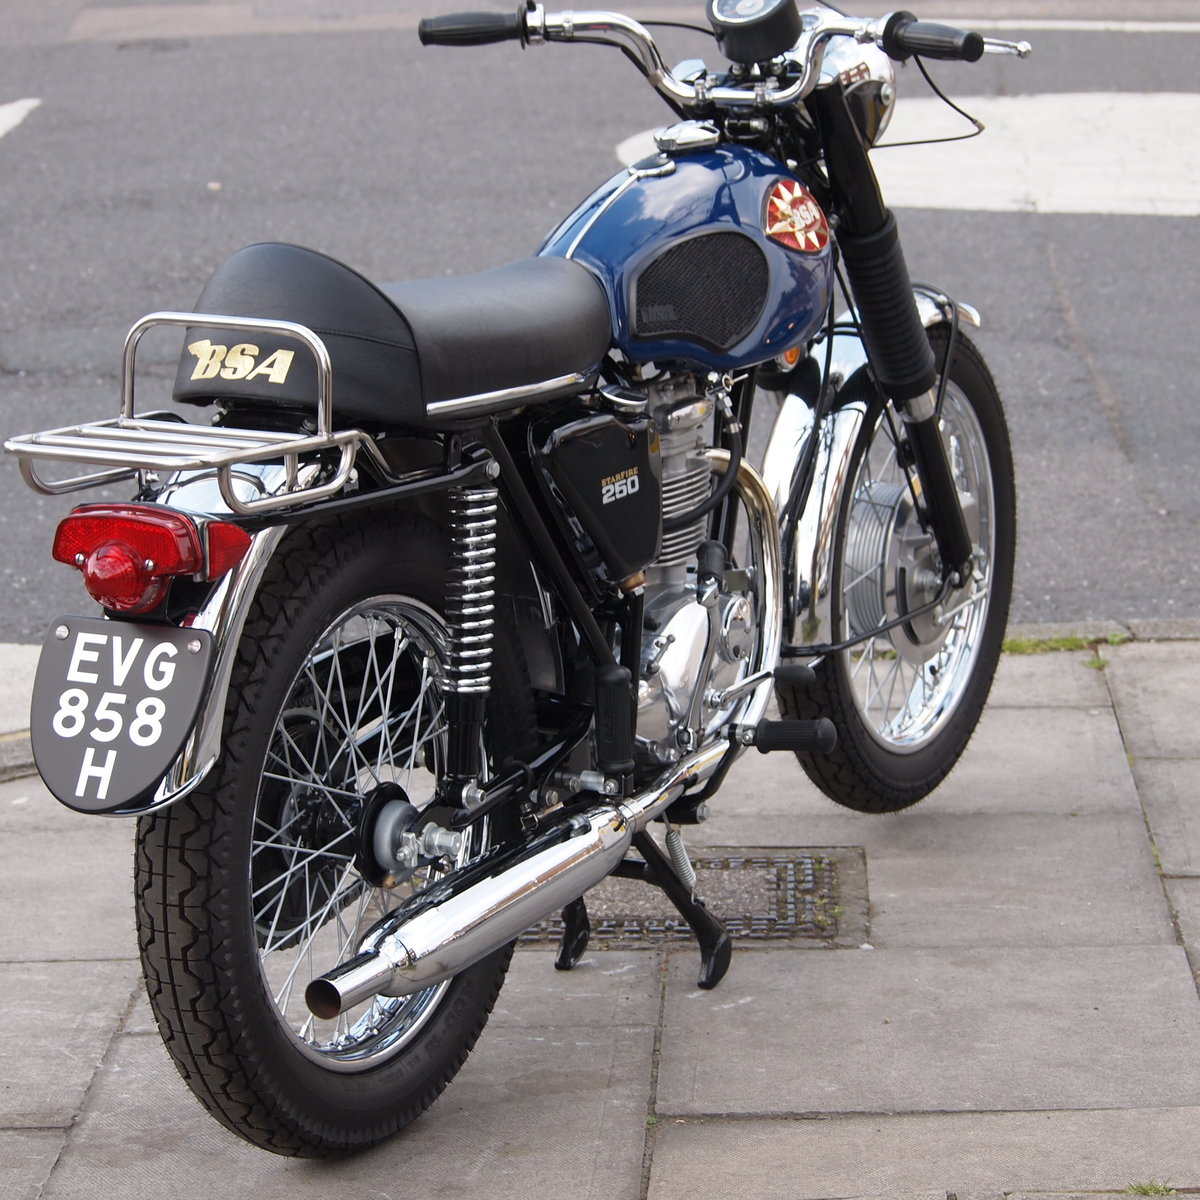 1970 BSA B25 S Starfire As Seen At Stafford Show, Like New. SOLD (picture 4 of 6)